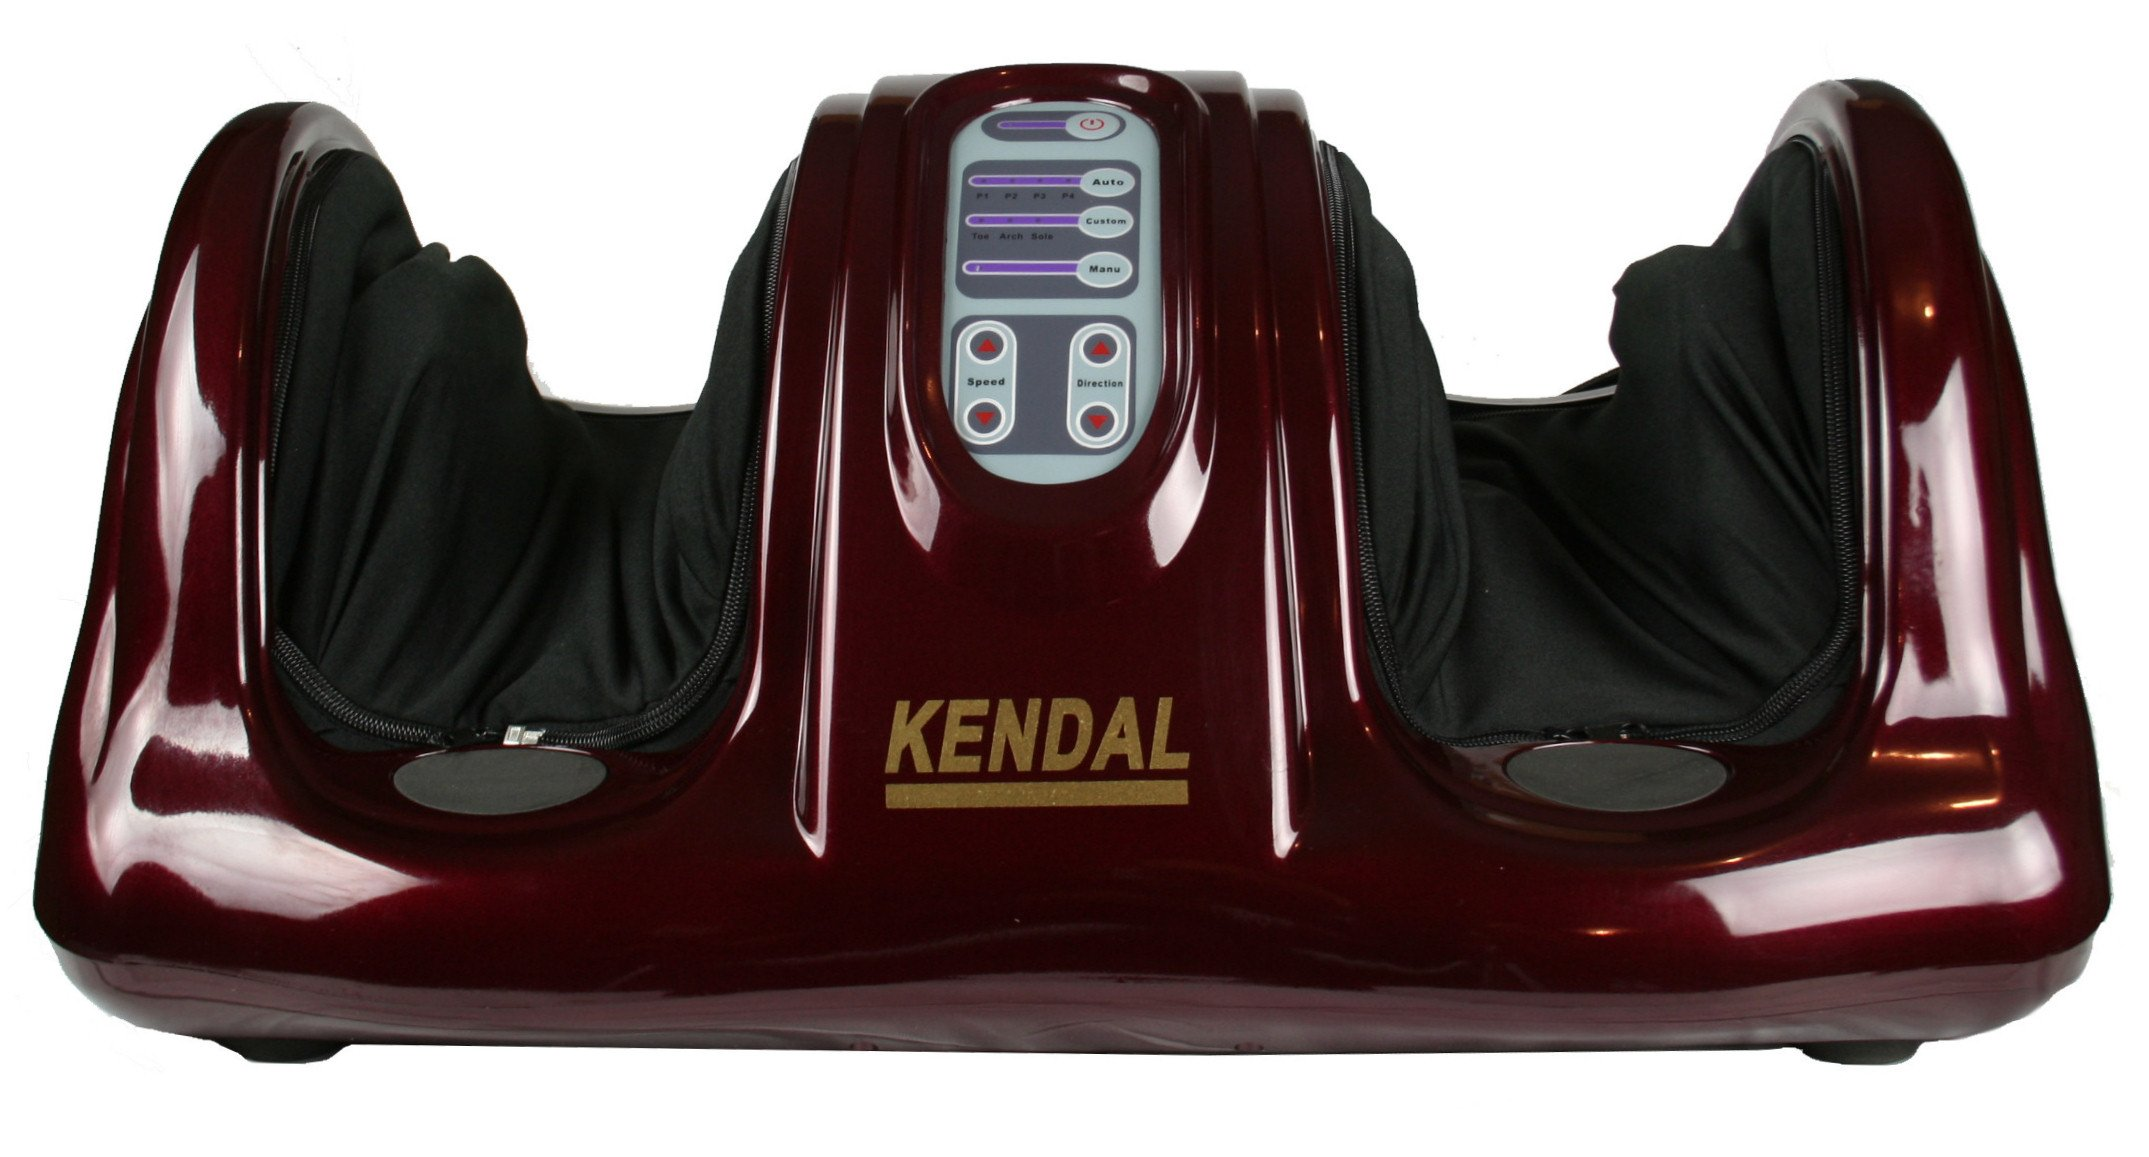 Shiatsu Kneading and Rolling Foot Massager Personal Health Studio w/ remote control AM-201-red